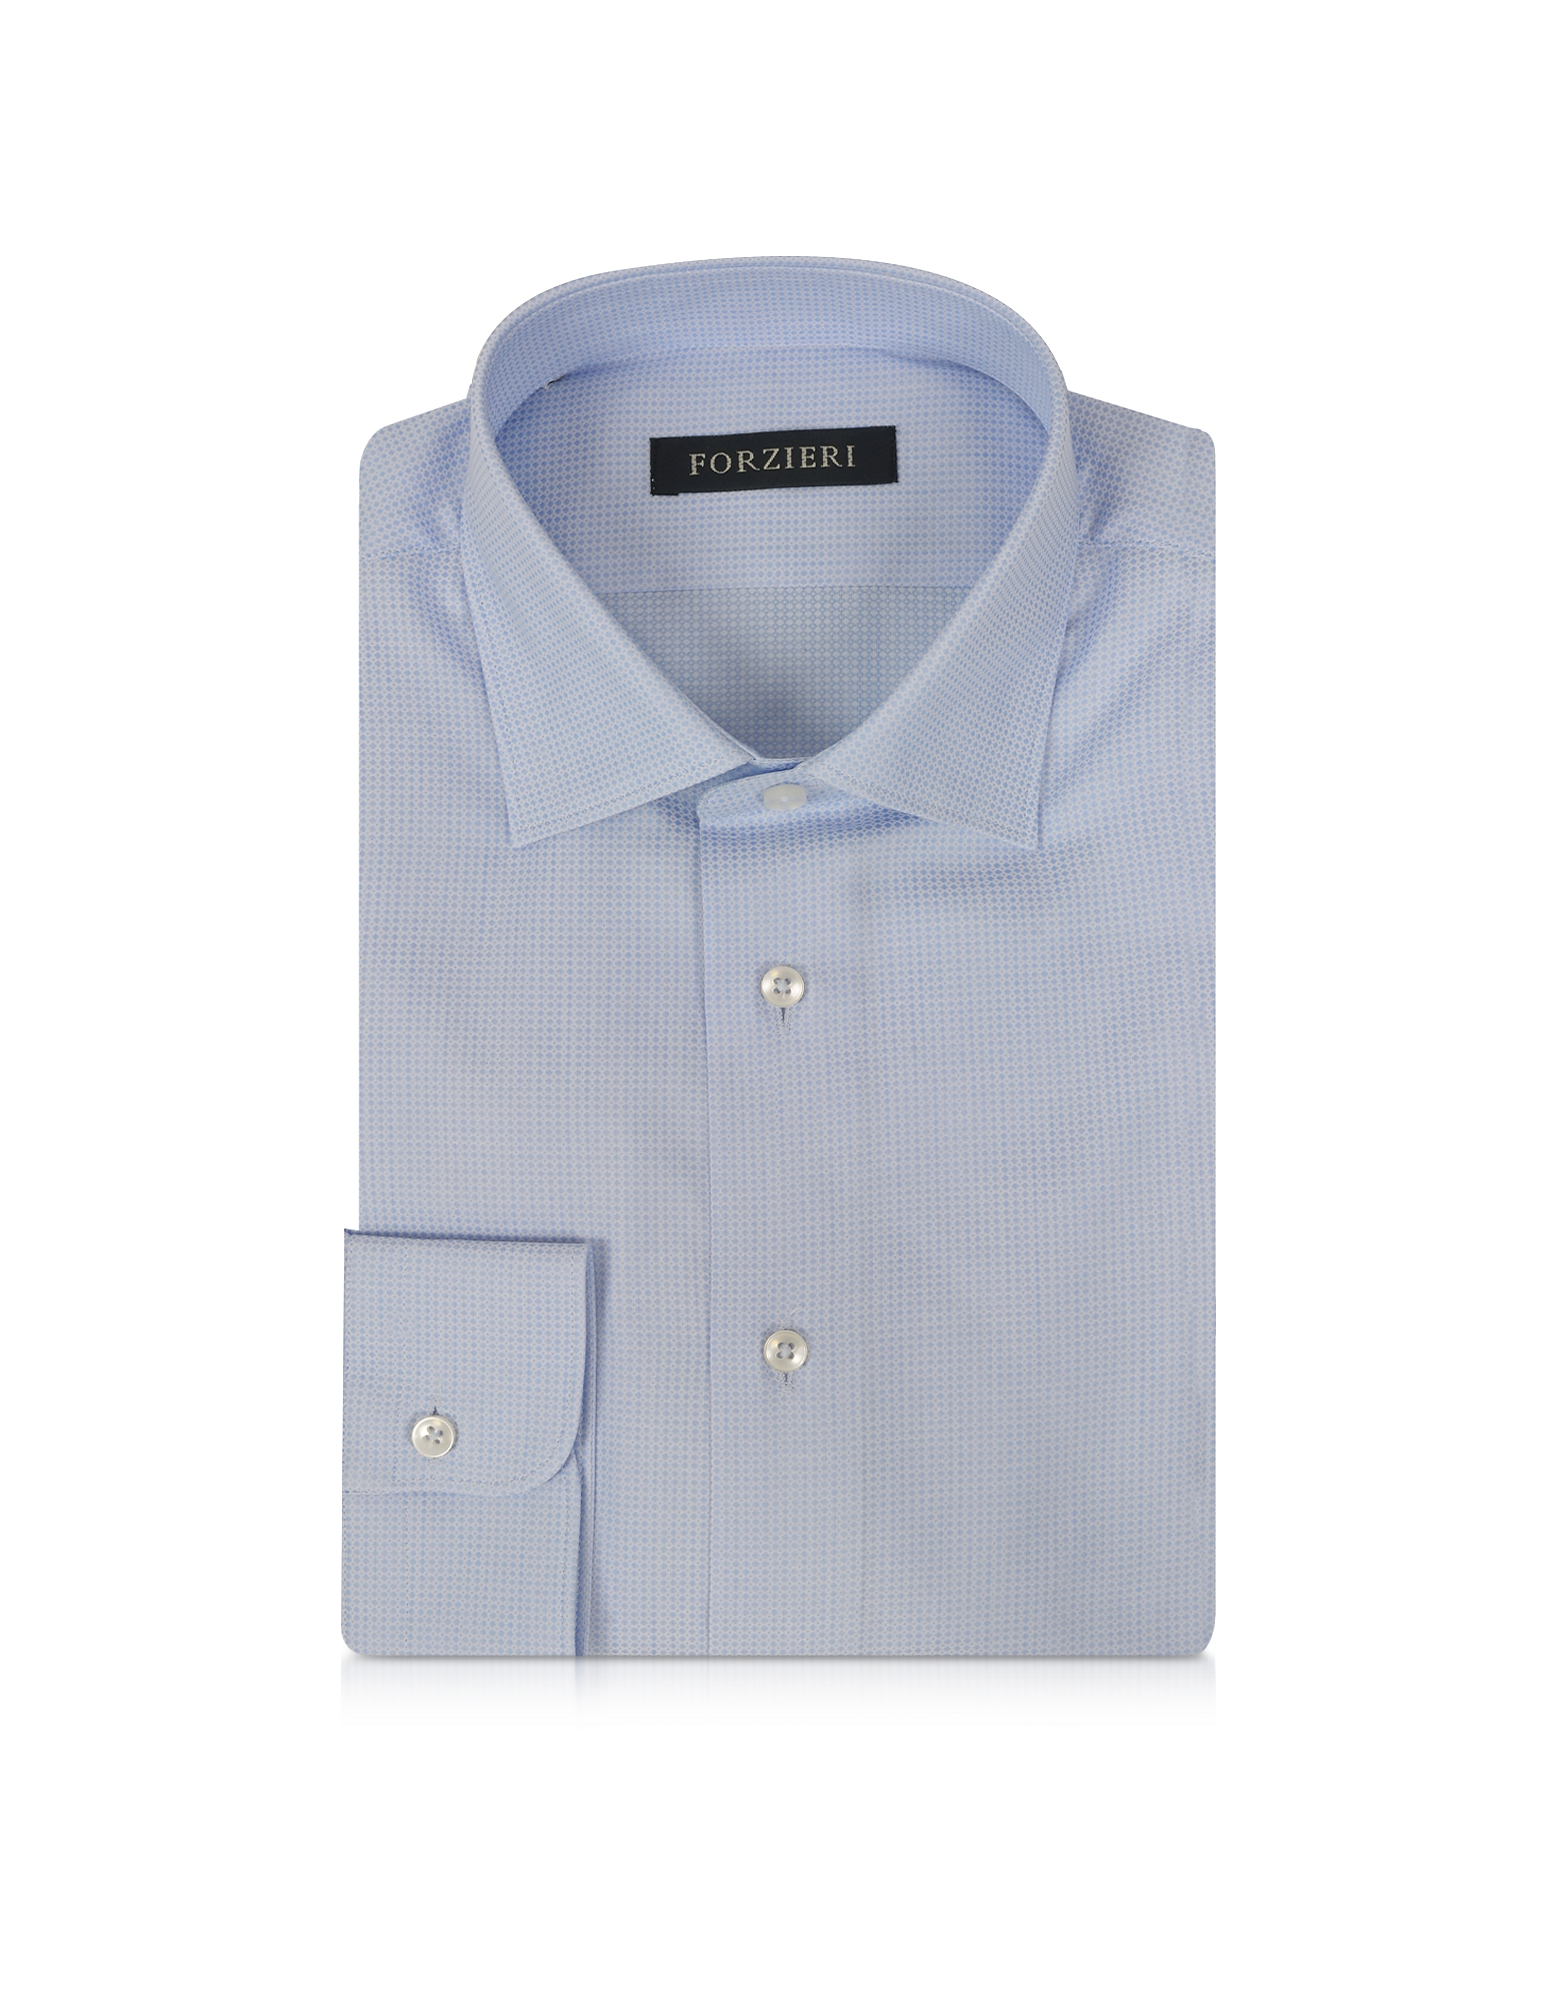 Light Blue Woven Cotton Men's Shirt